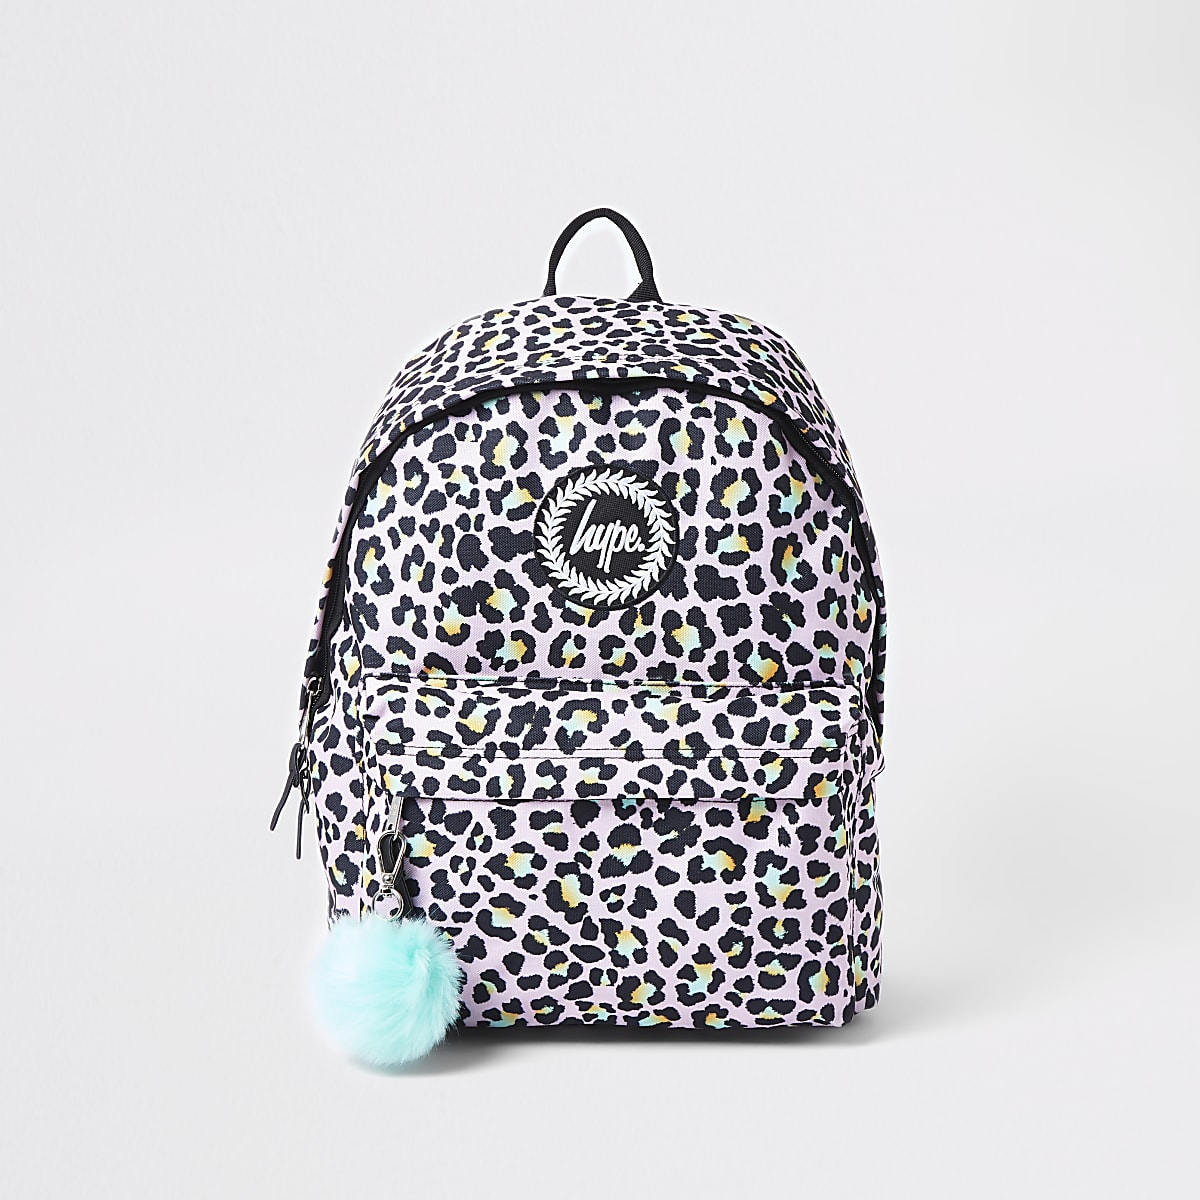 Hype light purple leopard print backpack